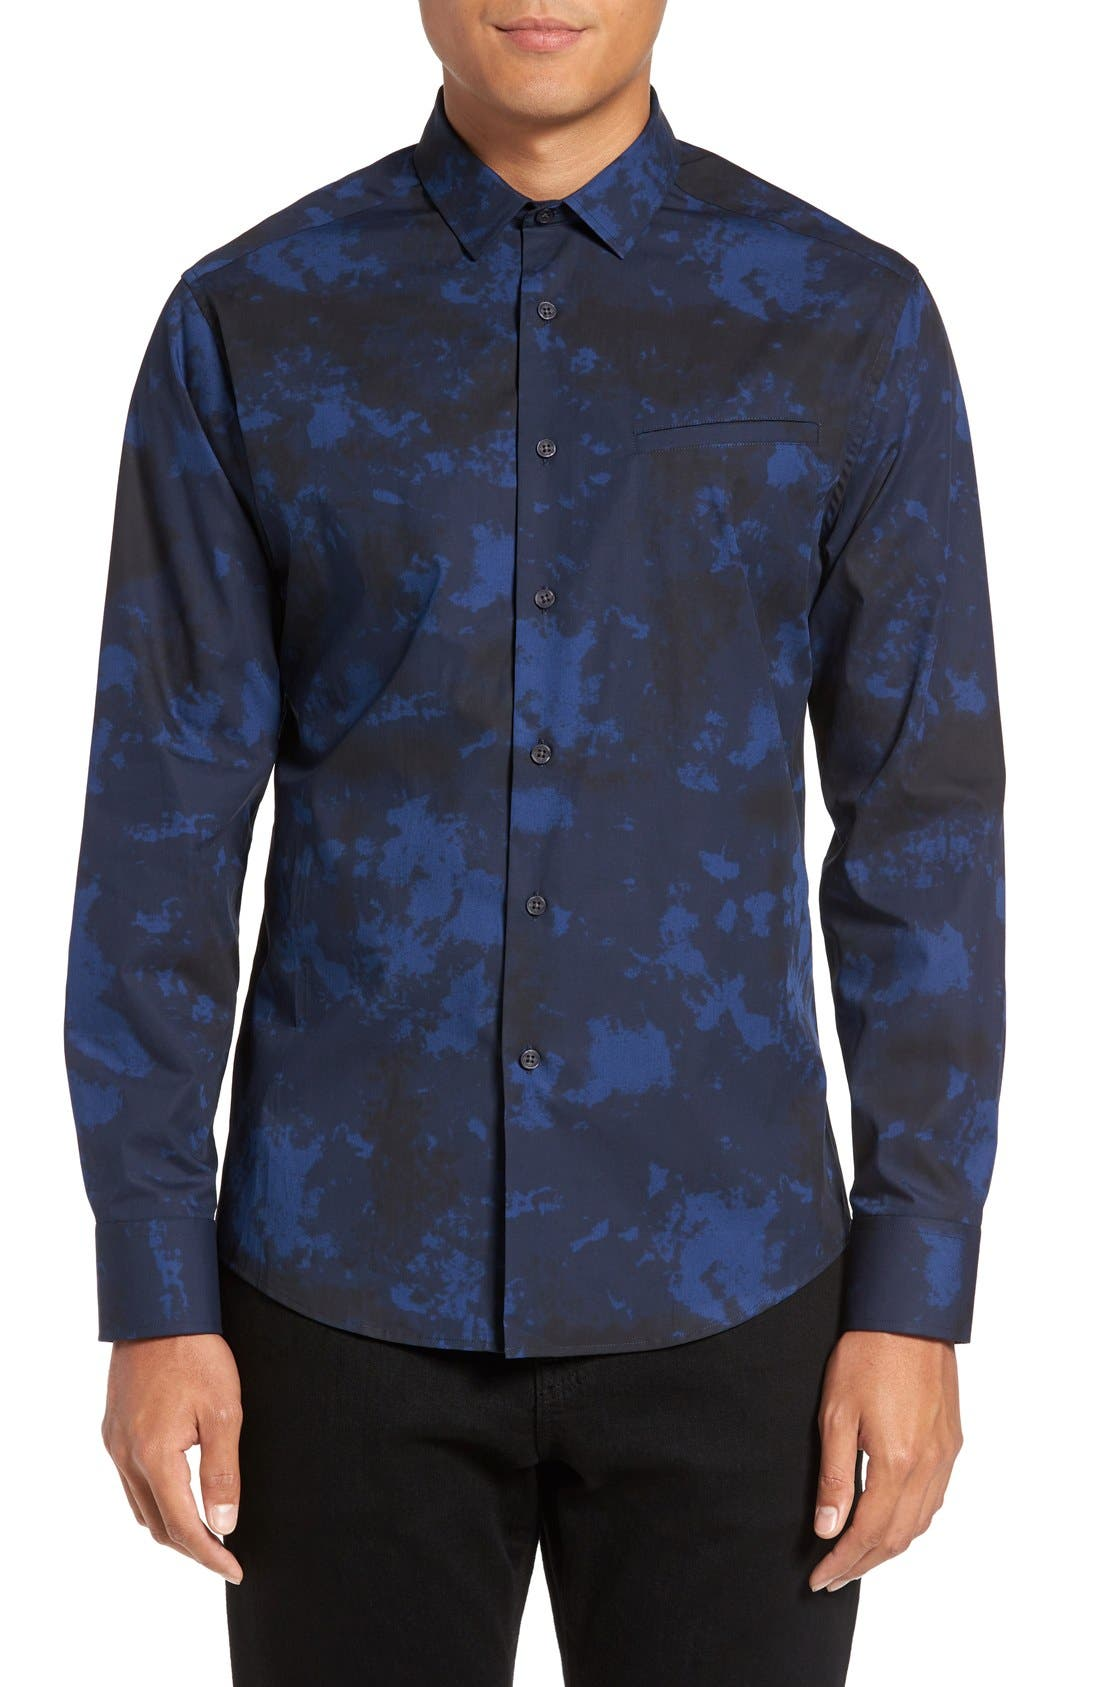 Slim Fit Sport Shirt,                             Main thumbnail 1, color,                             Navy/ Black Dyed Print